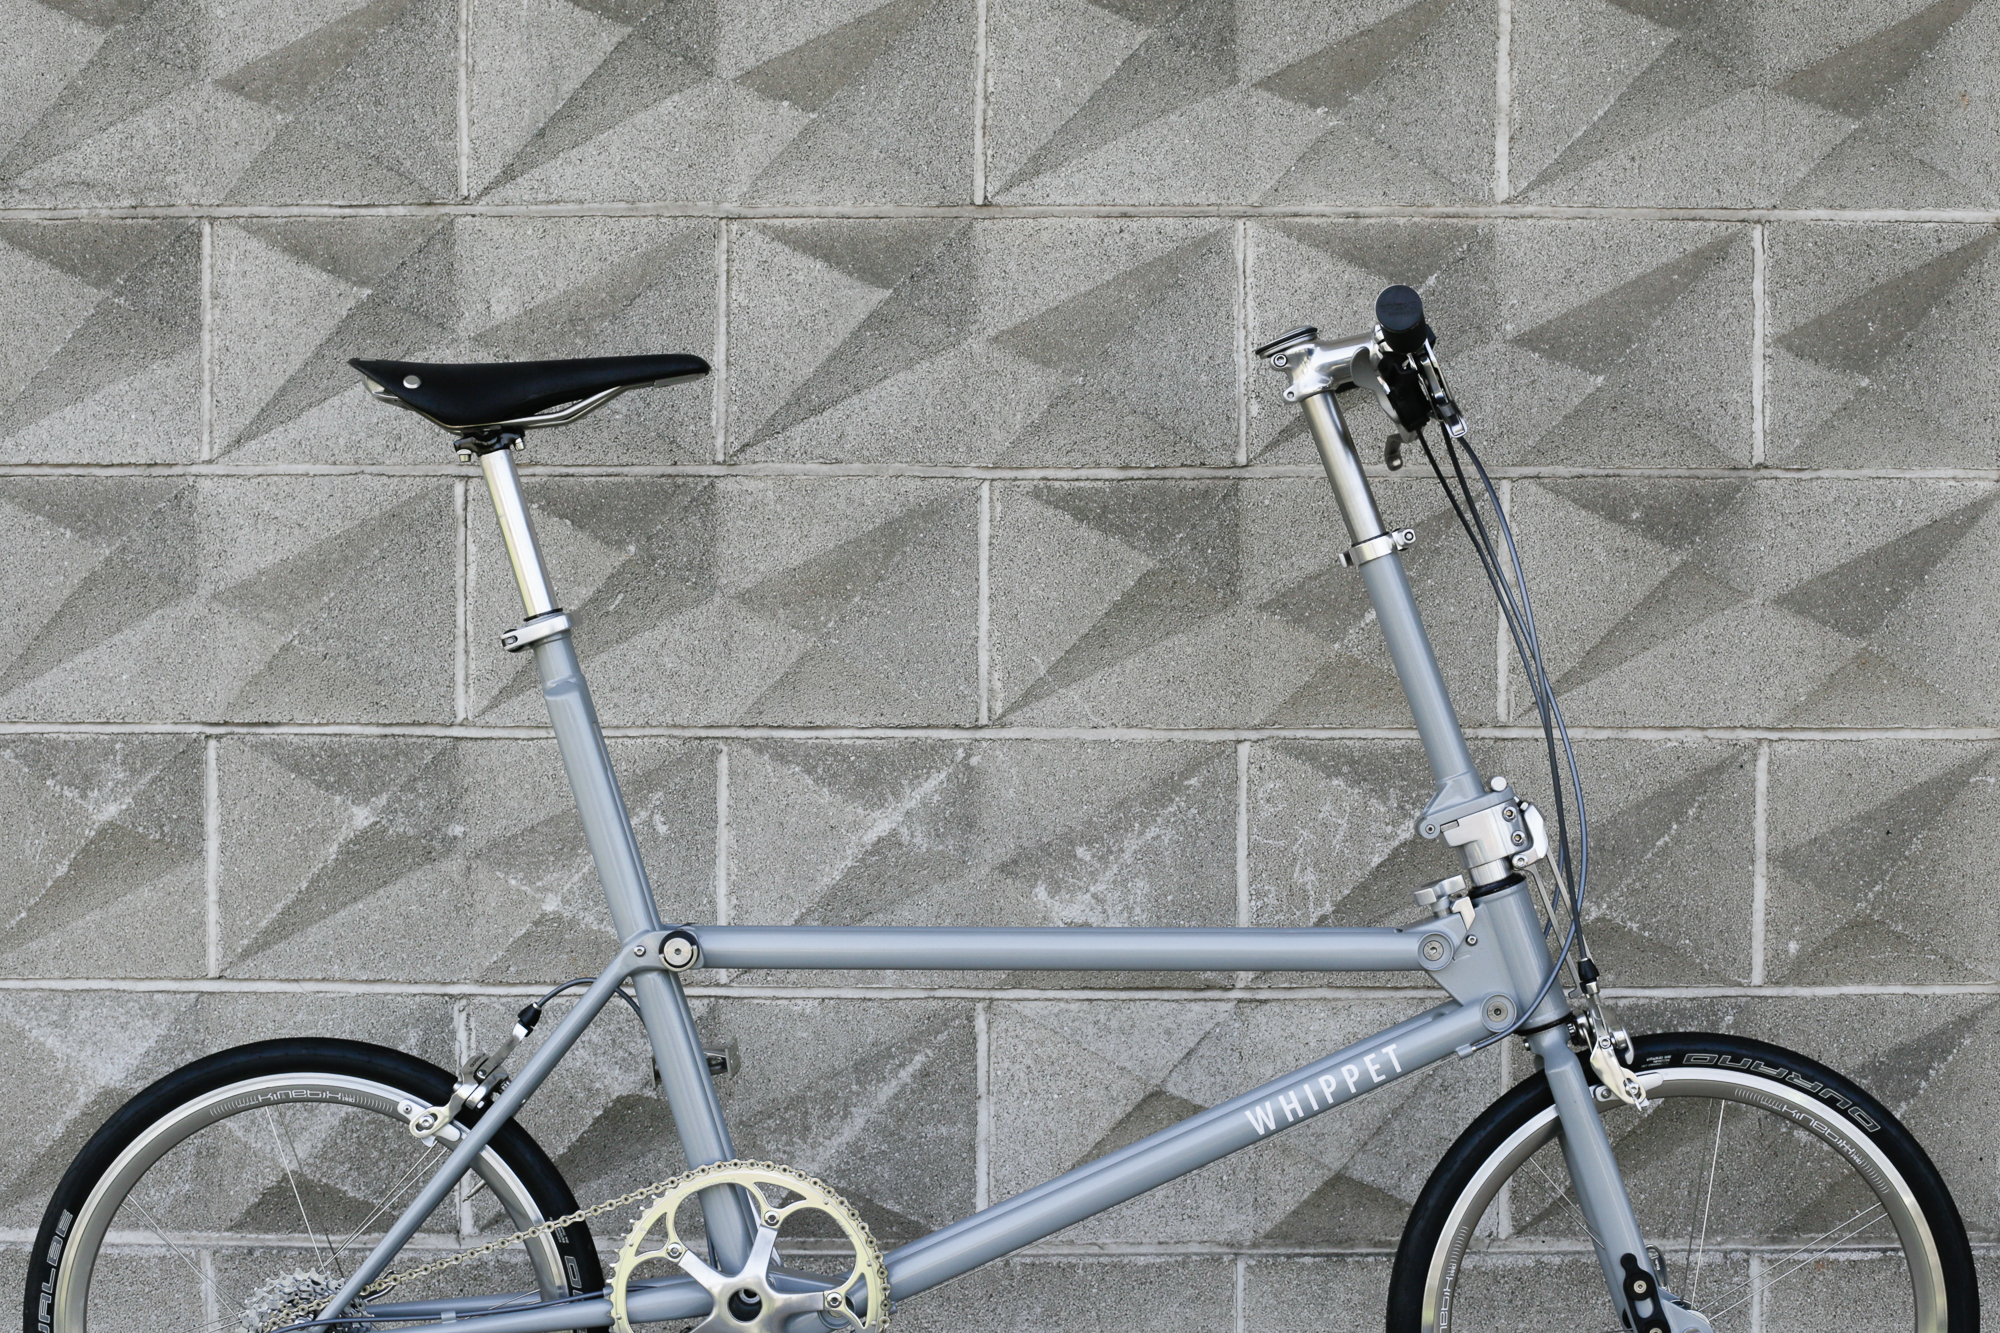 Whippet Bicycle with concrete background